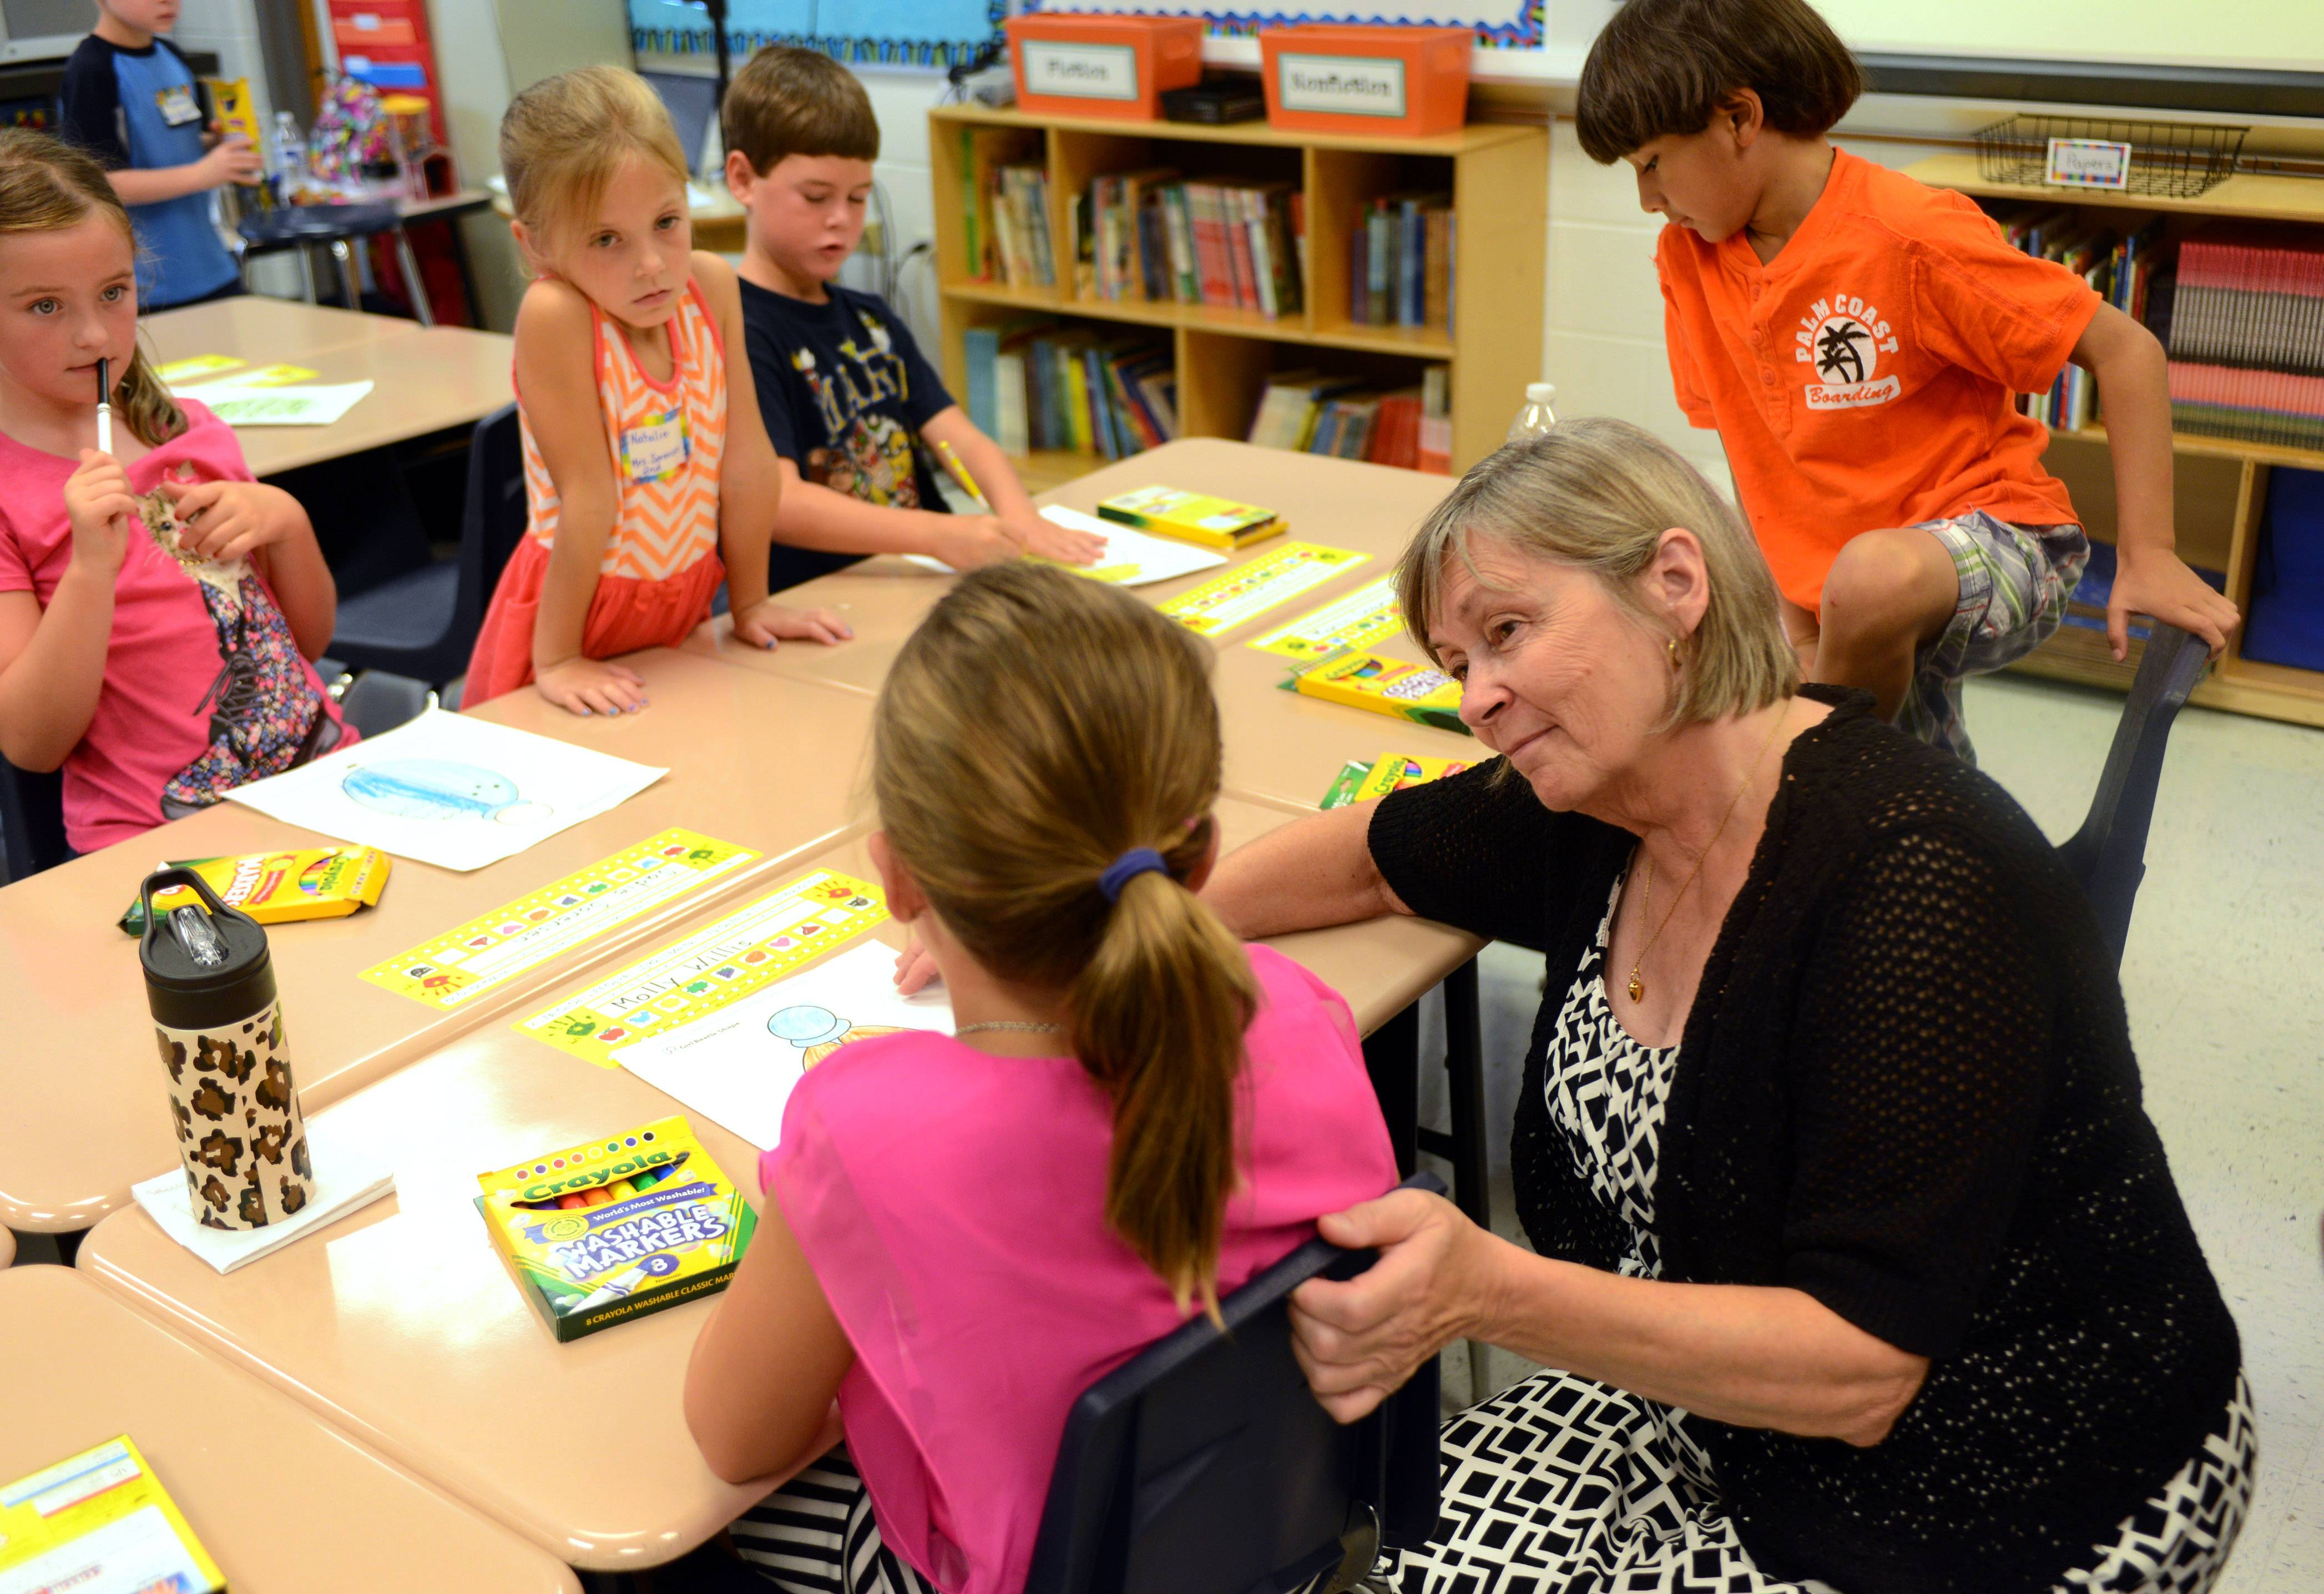 Oak Grove Elemenntary School second grade teacher Marie Sorensen works with students Friday on the first day of classes in Green Oaks. Sorensen is retiring at the end of this school year after 26 years of teaching at the school.